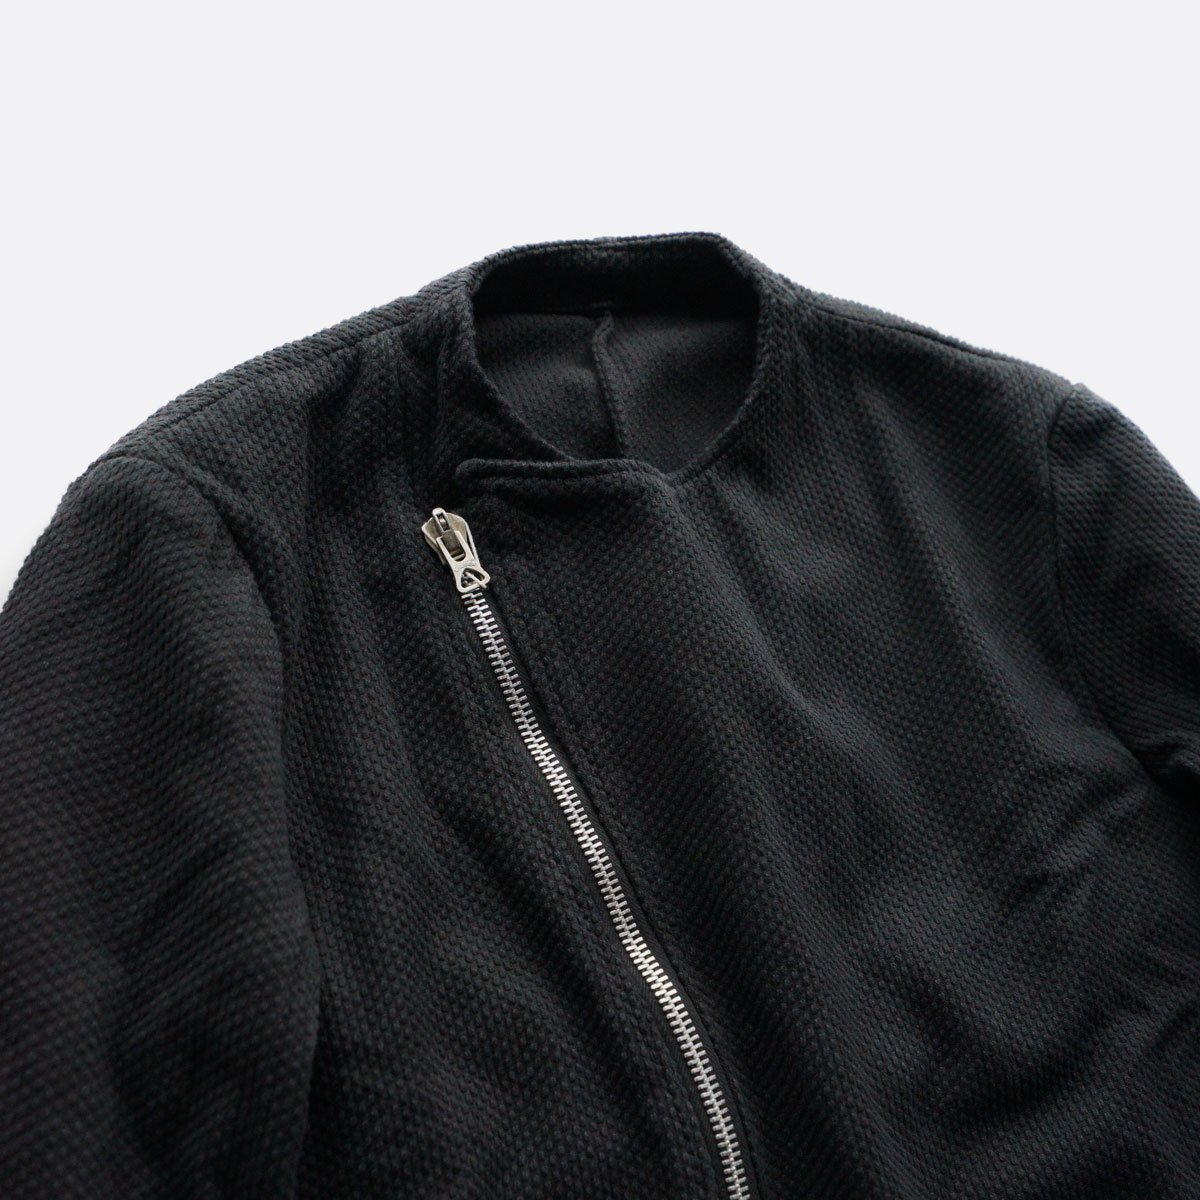 COLINA Sashiko W-Riders Jacket  (Antique black)4